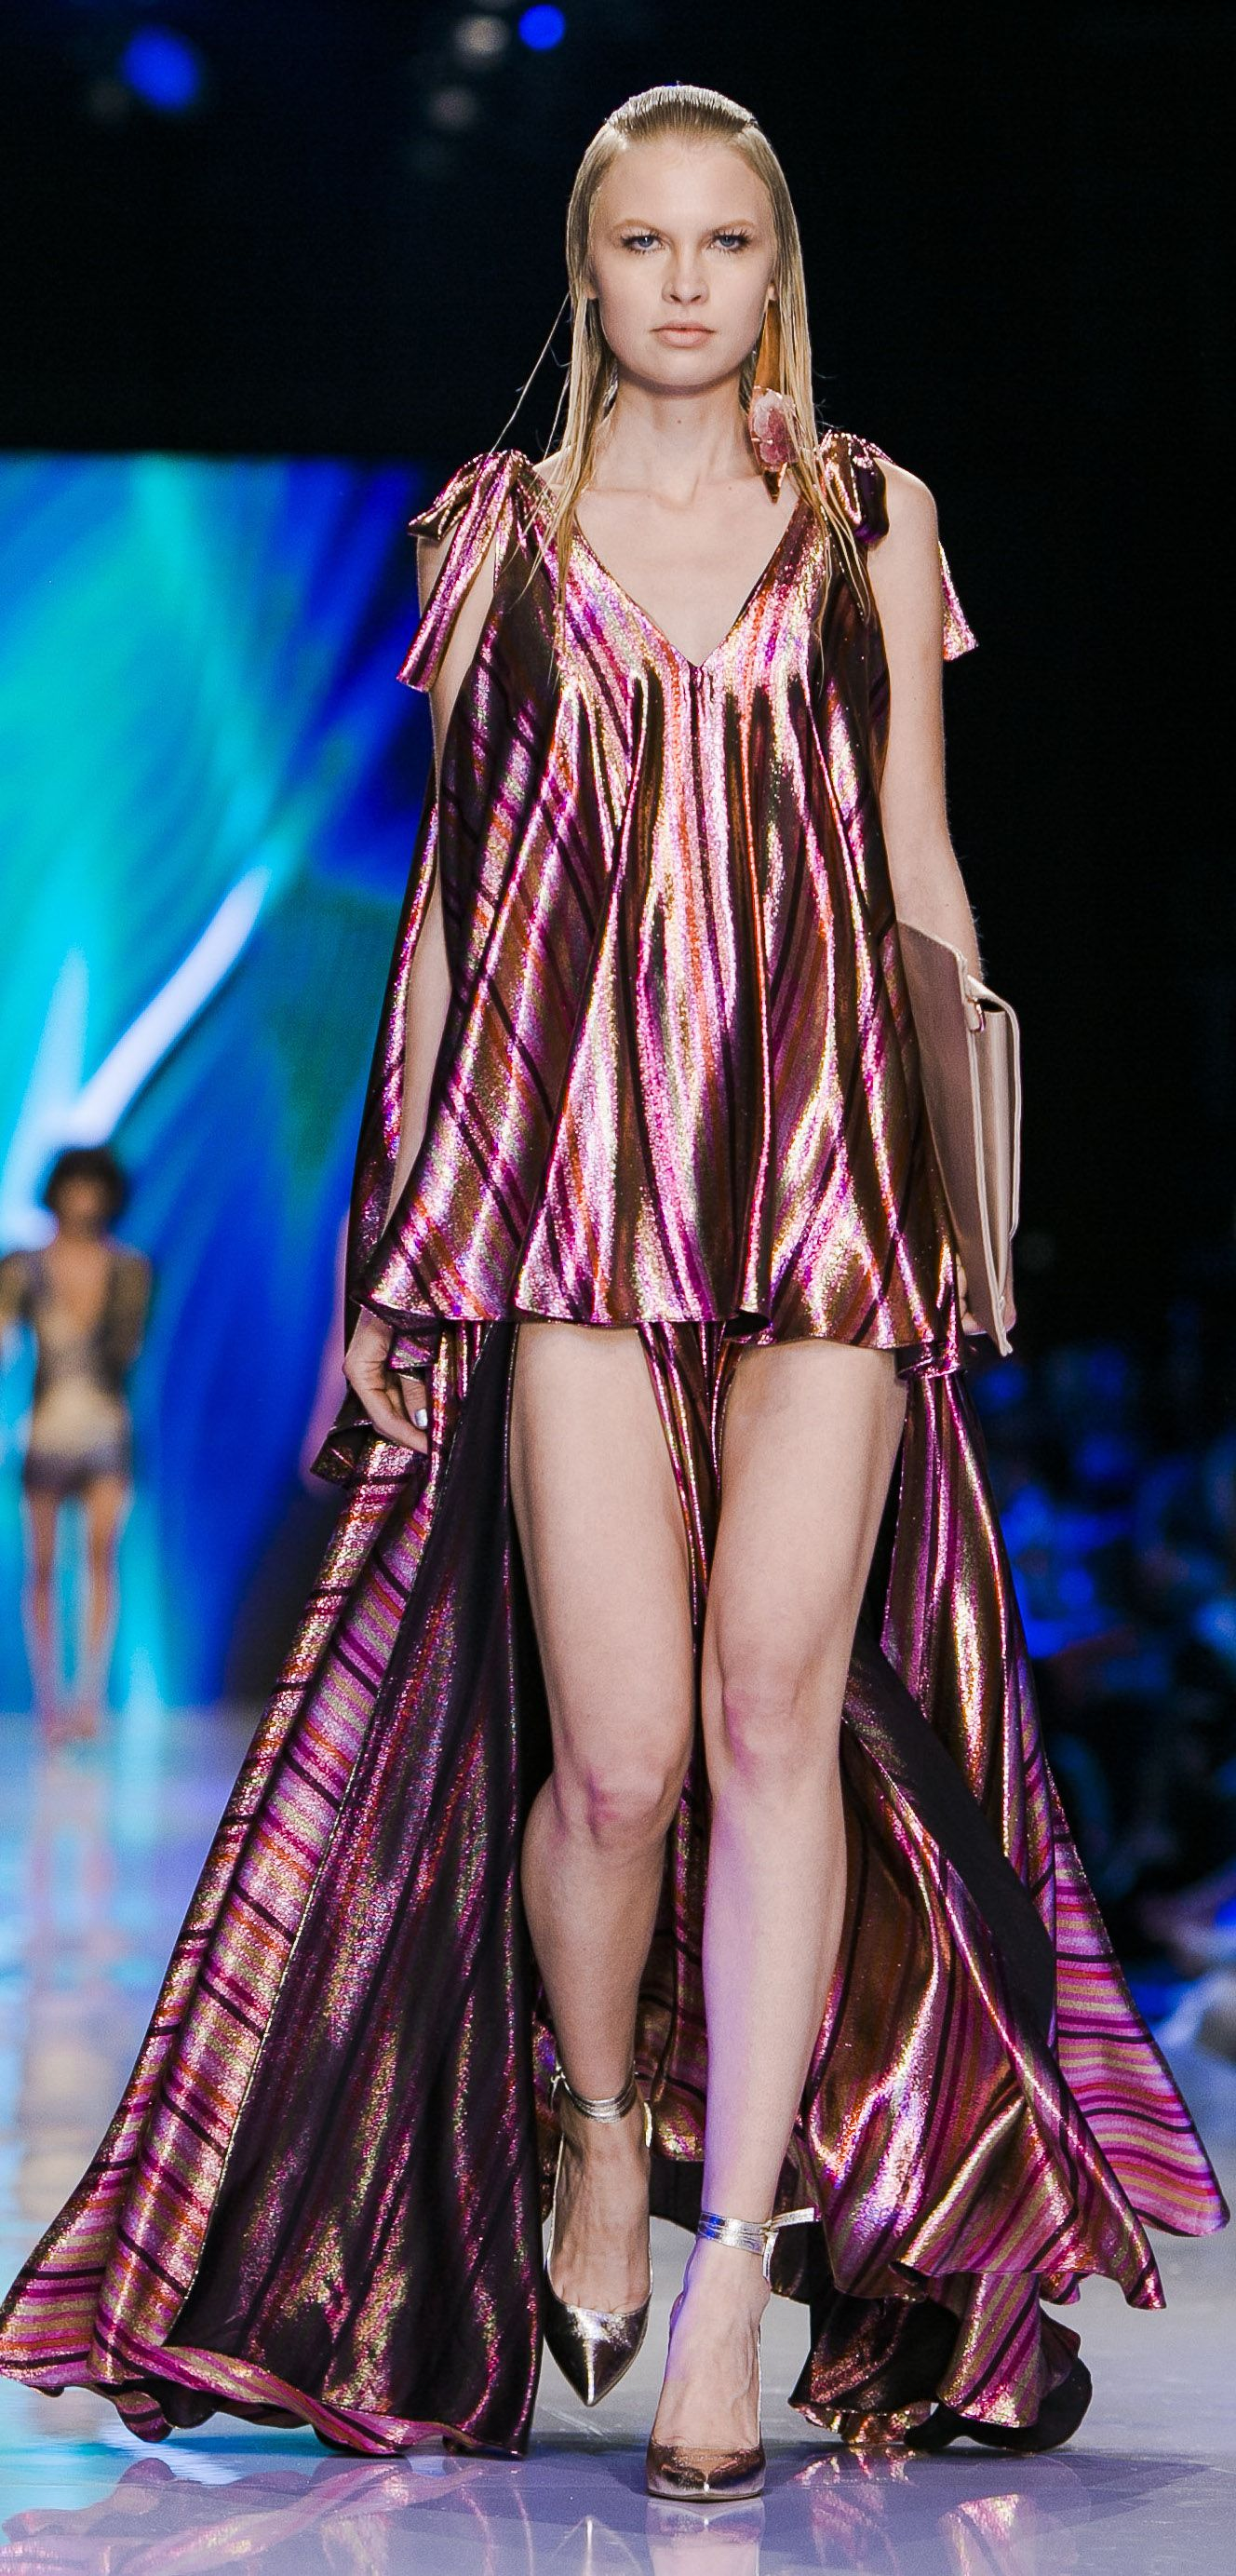 Evening wear ready to wear collection presented at tel aviv fashion